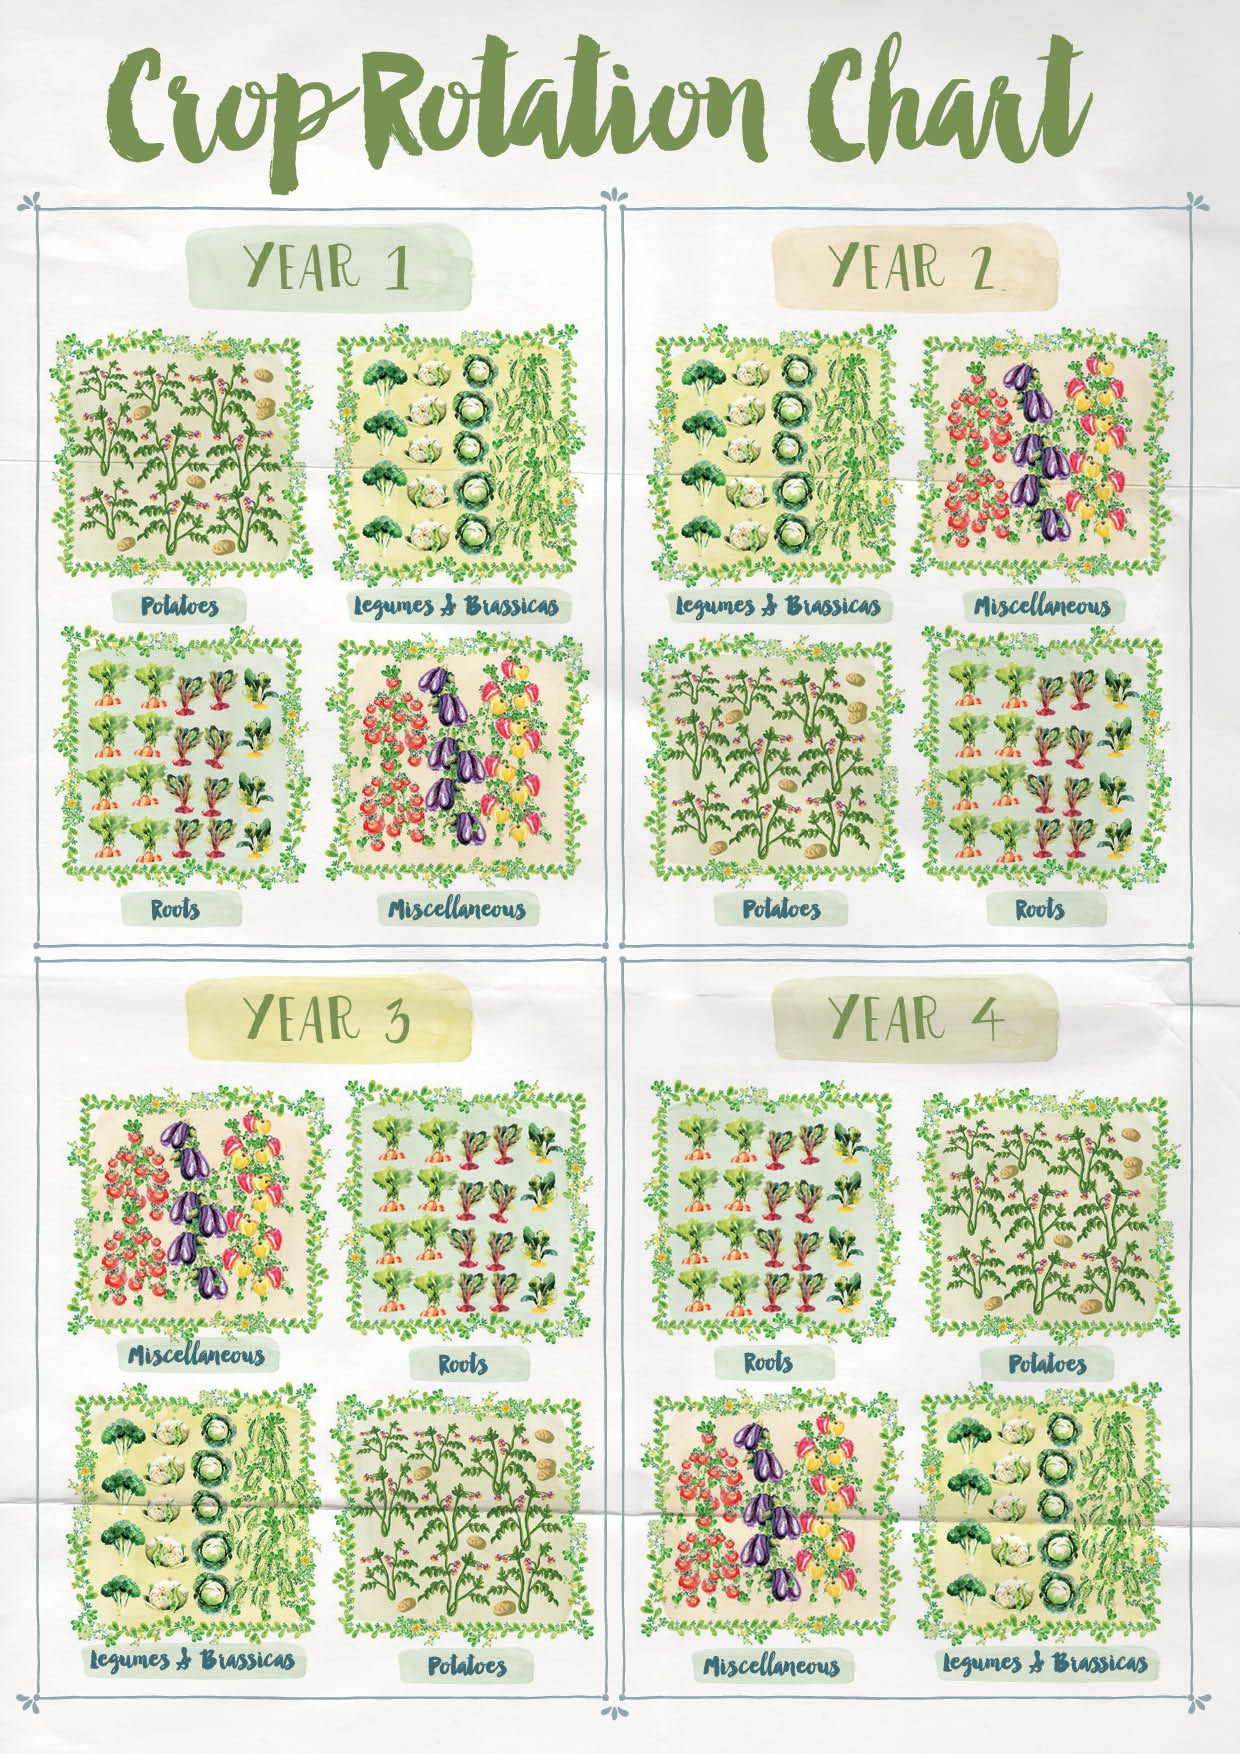 Crop rotation chart anna langbein blog also farming  gardening rh pinterest